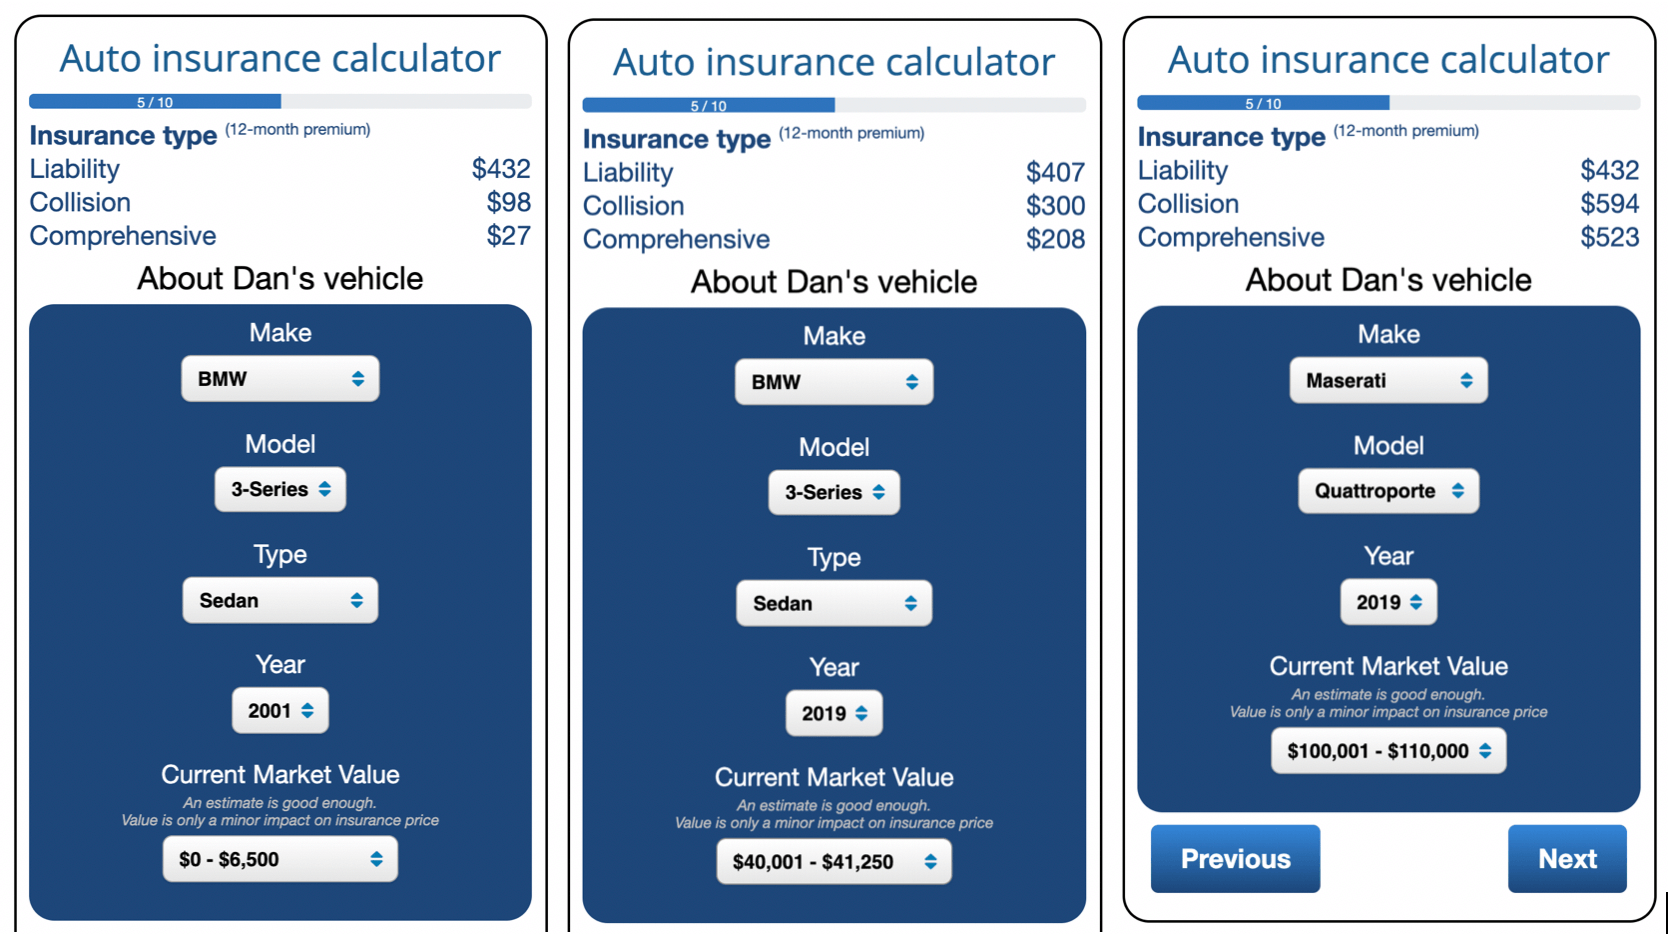 Comparing new car insurance to insurance for an old car. The new cars are a 2019 Maserati Quattroporte and a 2019 BMW 3-Series. The old car was a 2001 BMW 3-series vs. 2019 Maserati Quattroporte